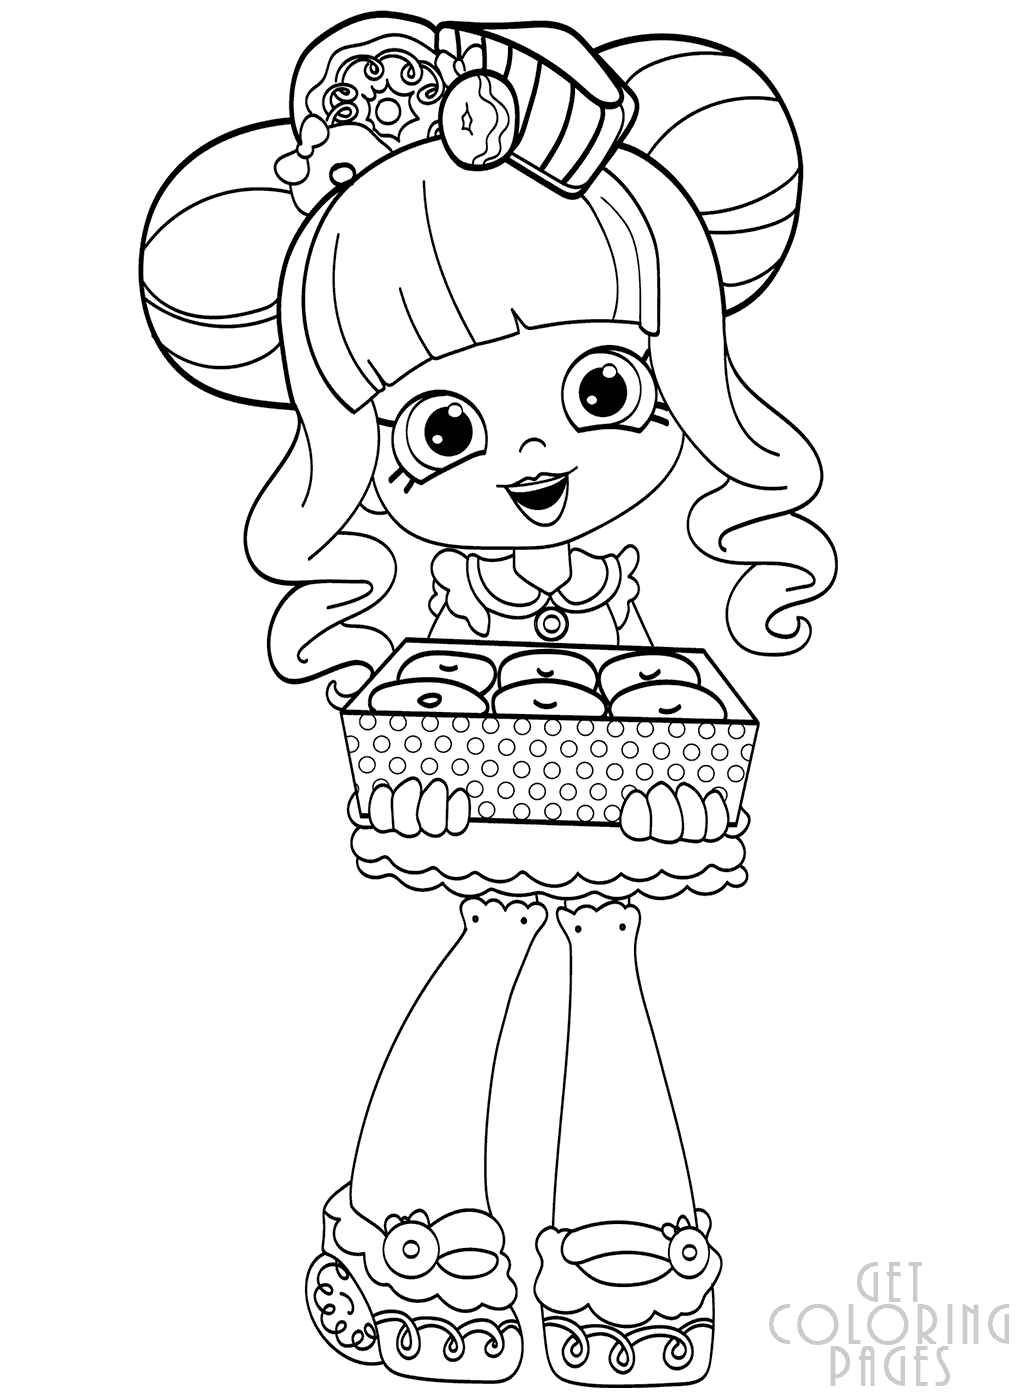 shopkins shoppies coloring pages - photo#11